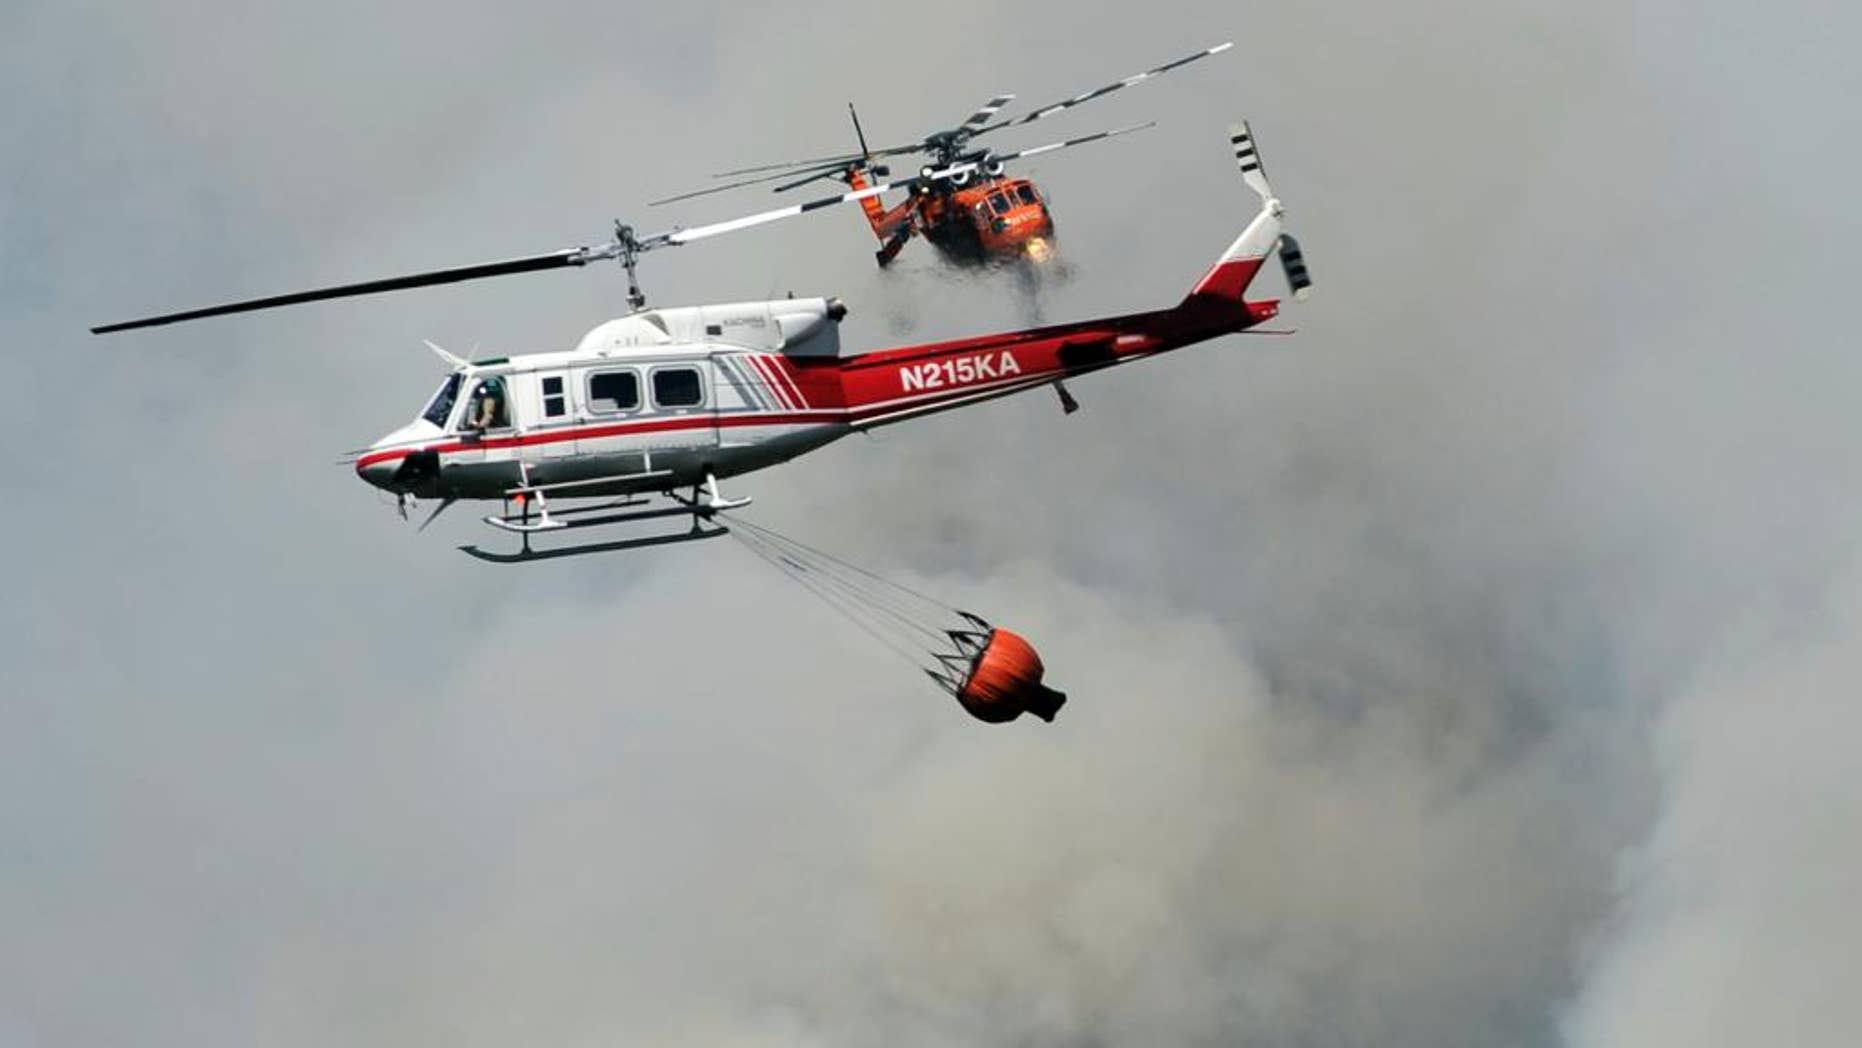 A helicopter flies over Willow Creek Canyon as a wildfire continues burning in the Sierra near Bass Lake, Calif., Monday, July 27, 2015. More wildfires have torn across California so far this year compared with the same period of 2014, but firefighters said Monday that efforts to confine and extinguish the latest blazes have been more successful than in the past.  (Eric Paul Zamora/The Fresno Bee via AP)